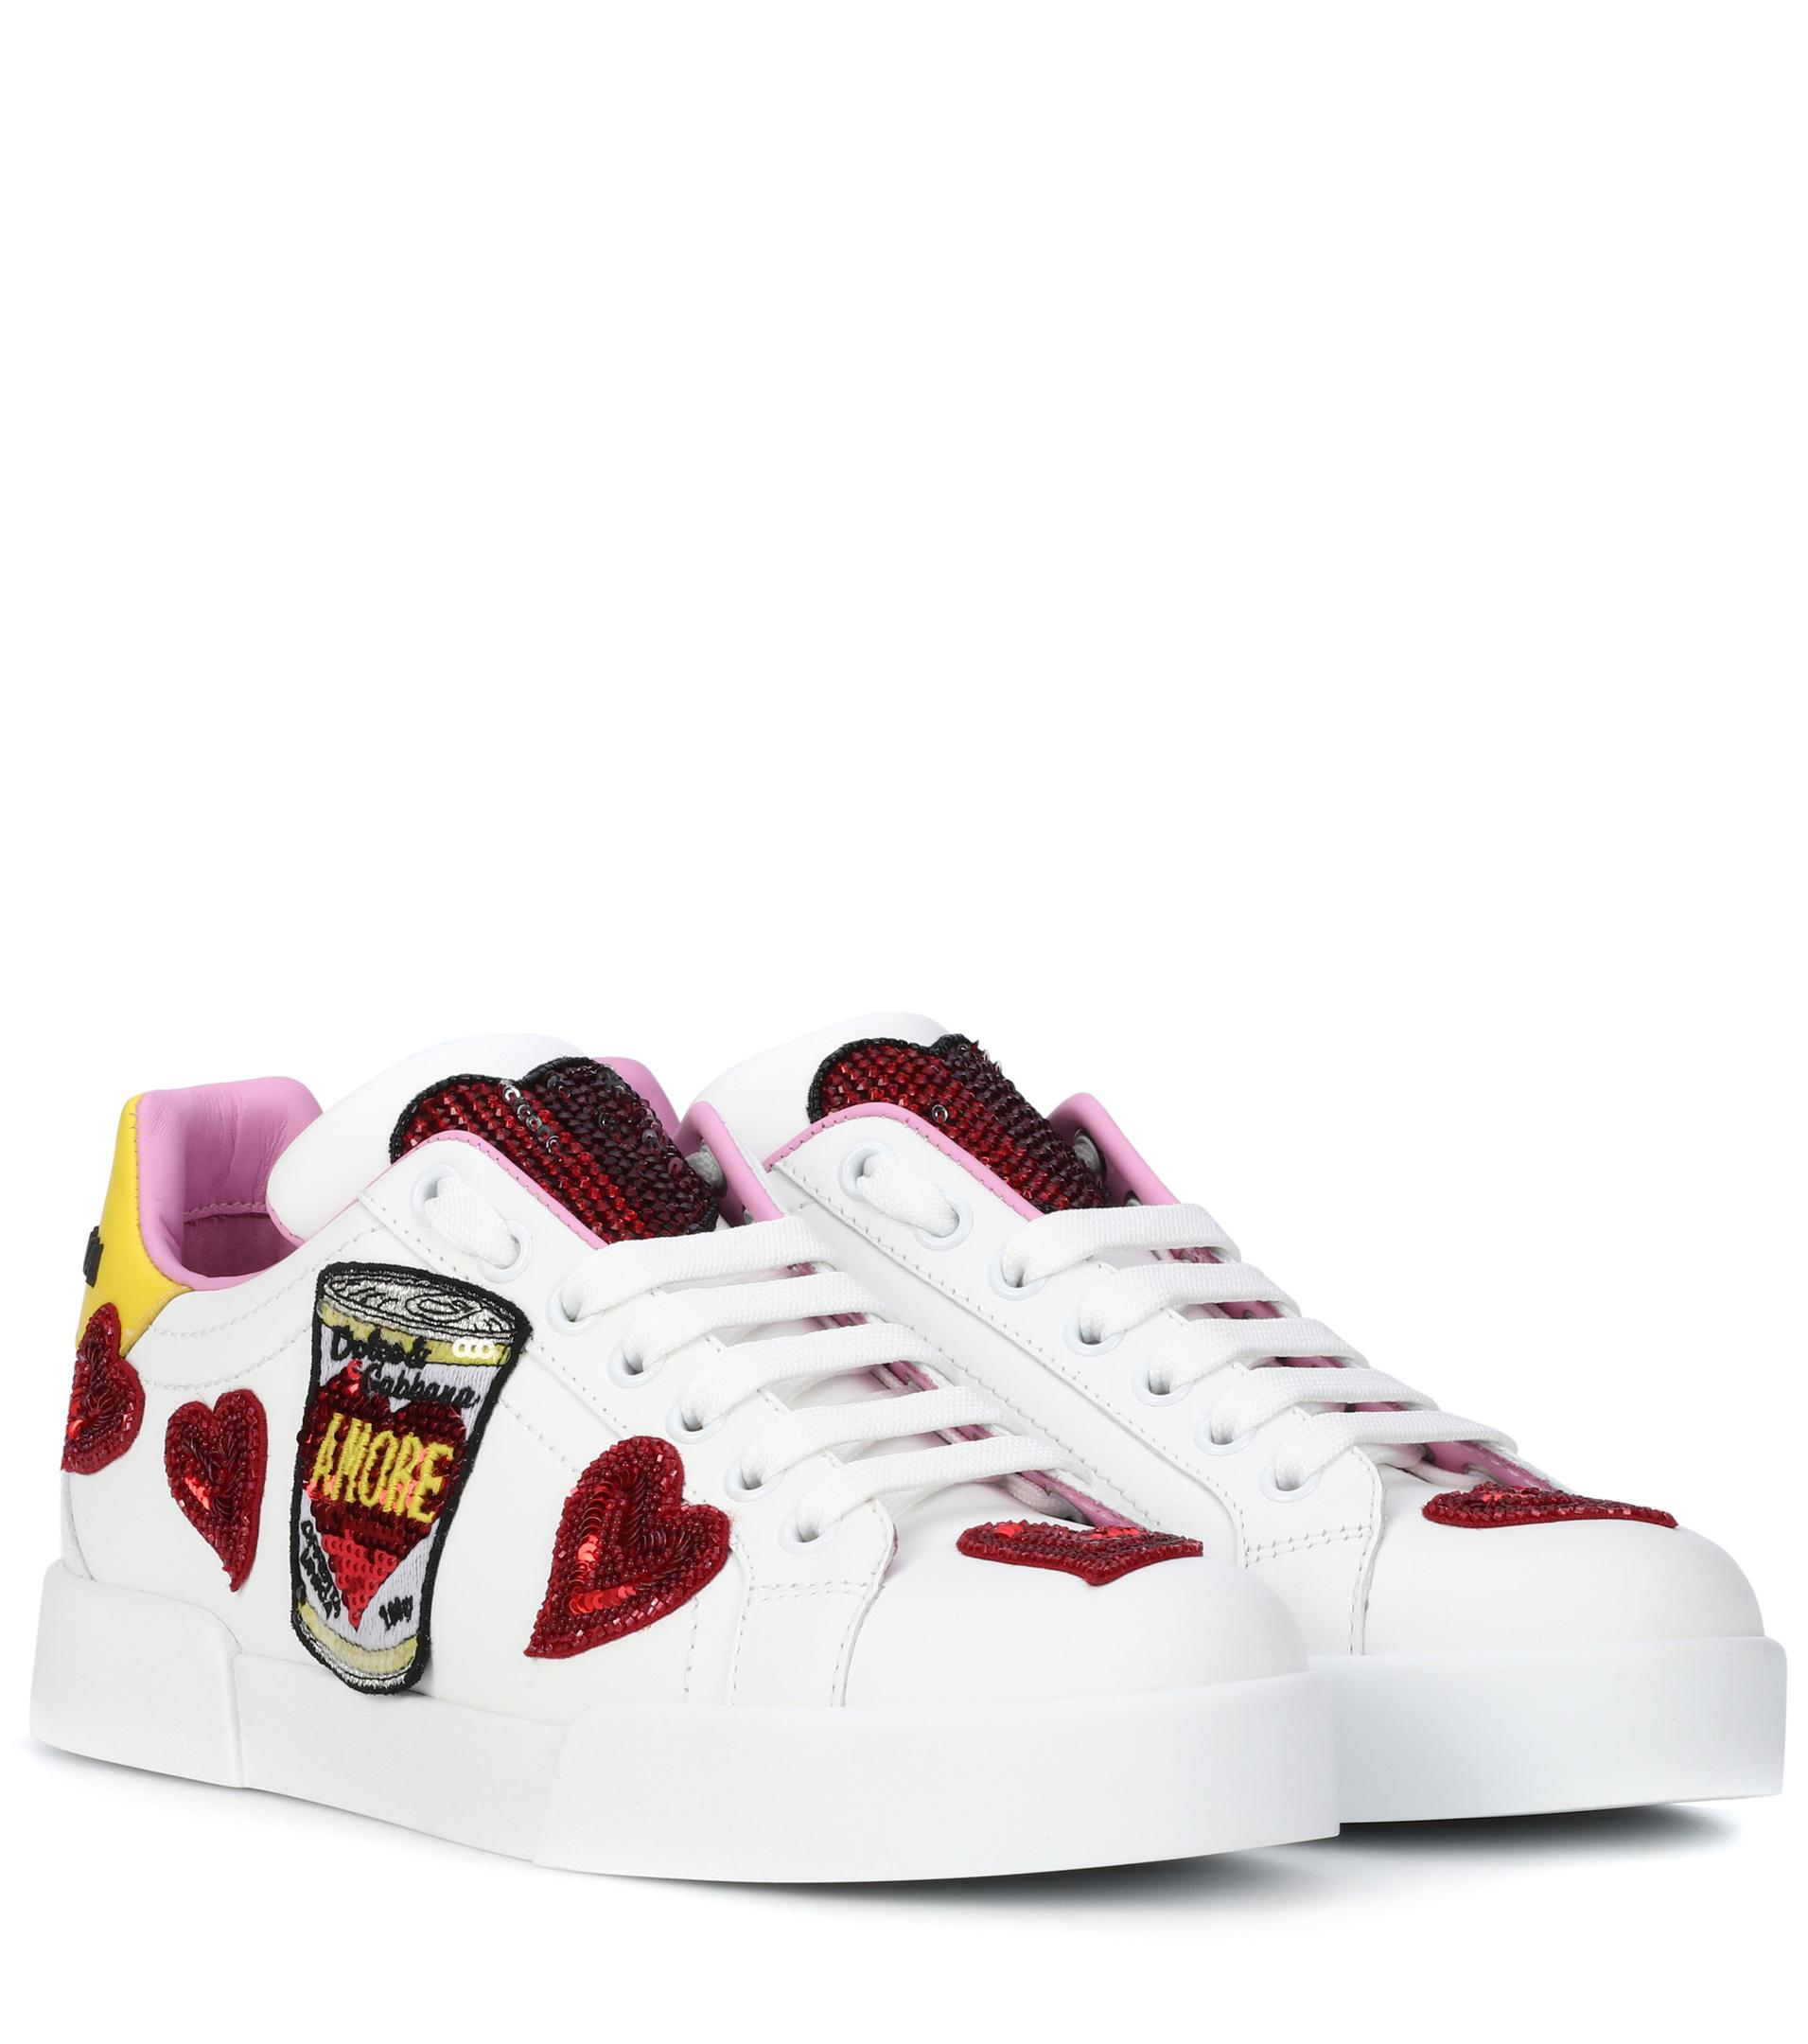 cheap sale amazon Dolce & Gabbana Portofino embellished leather sneakers sale factory outlet FtUu3LCa